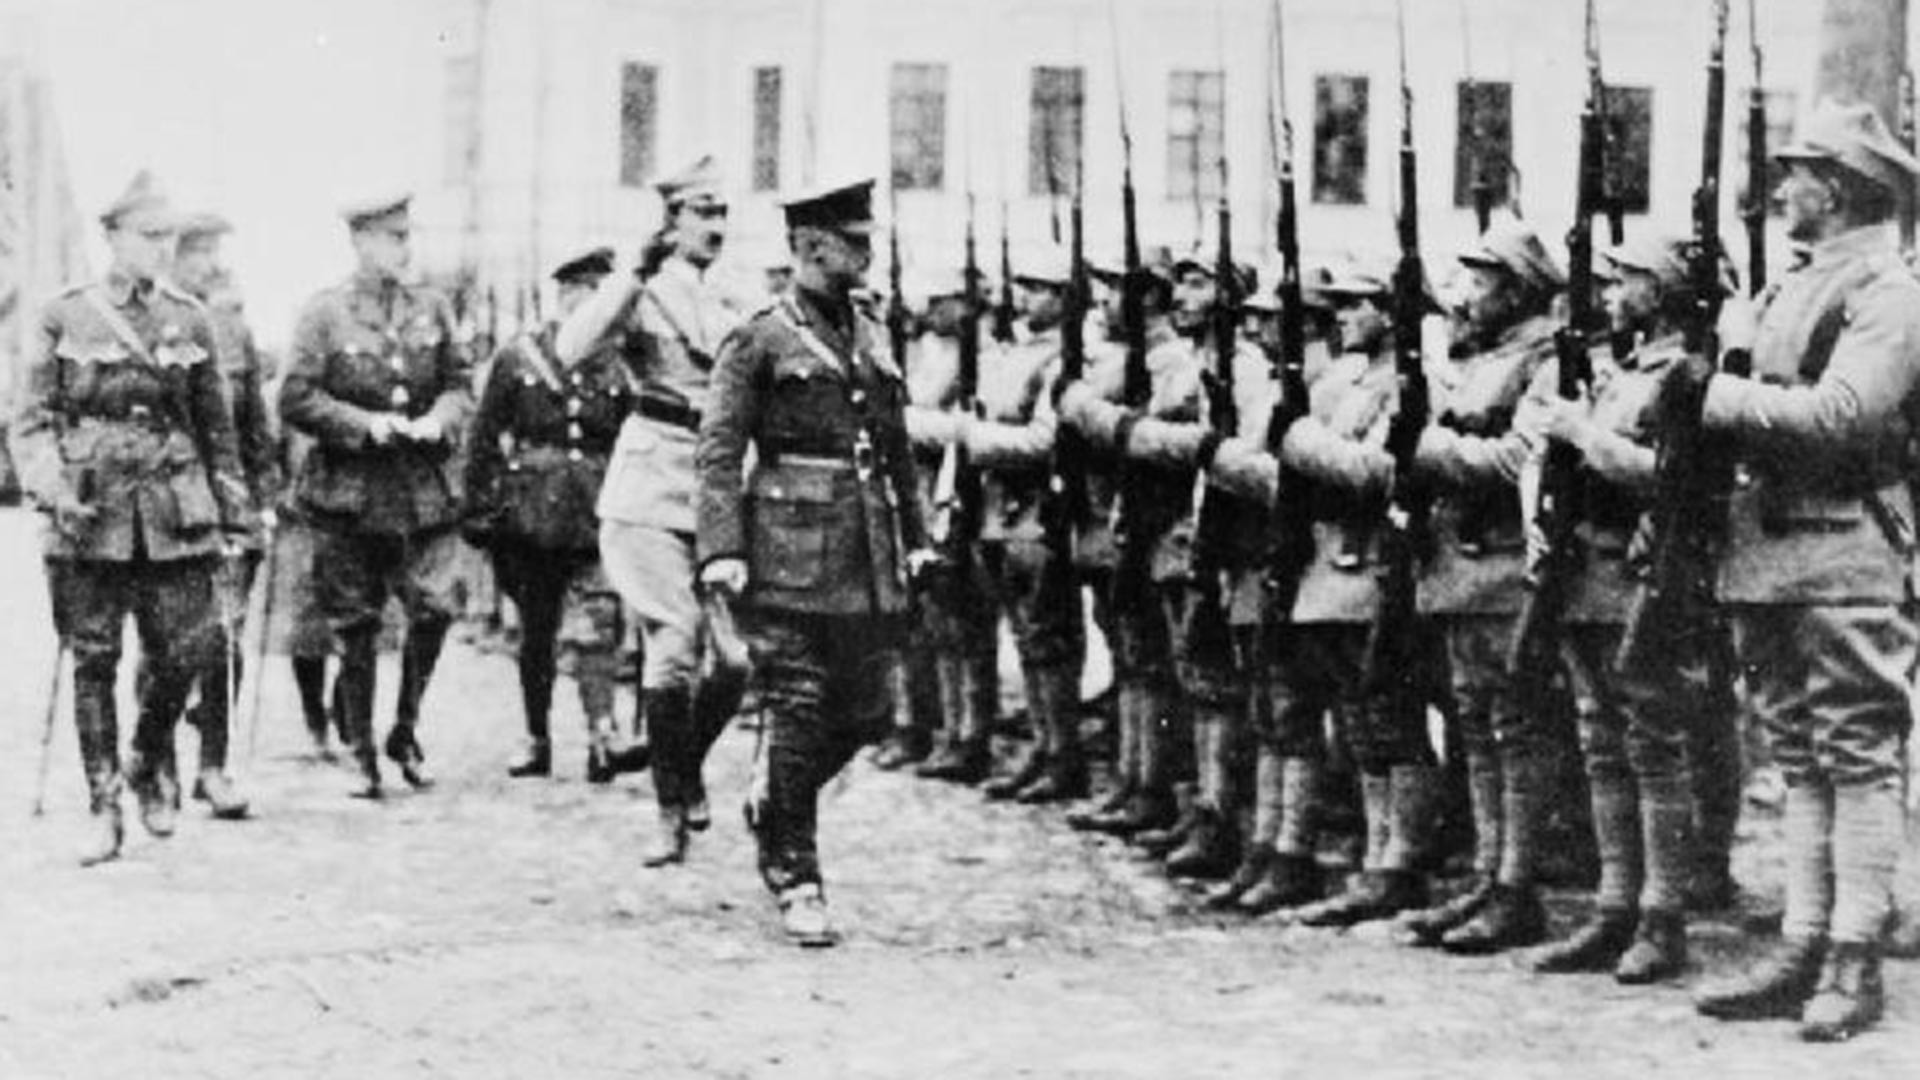 Polish, British and French officers inspecting a detachment of Polish troops of so called Murmansk Battalion before their departure for the front, Archangel 1919.